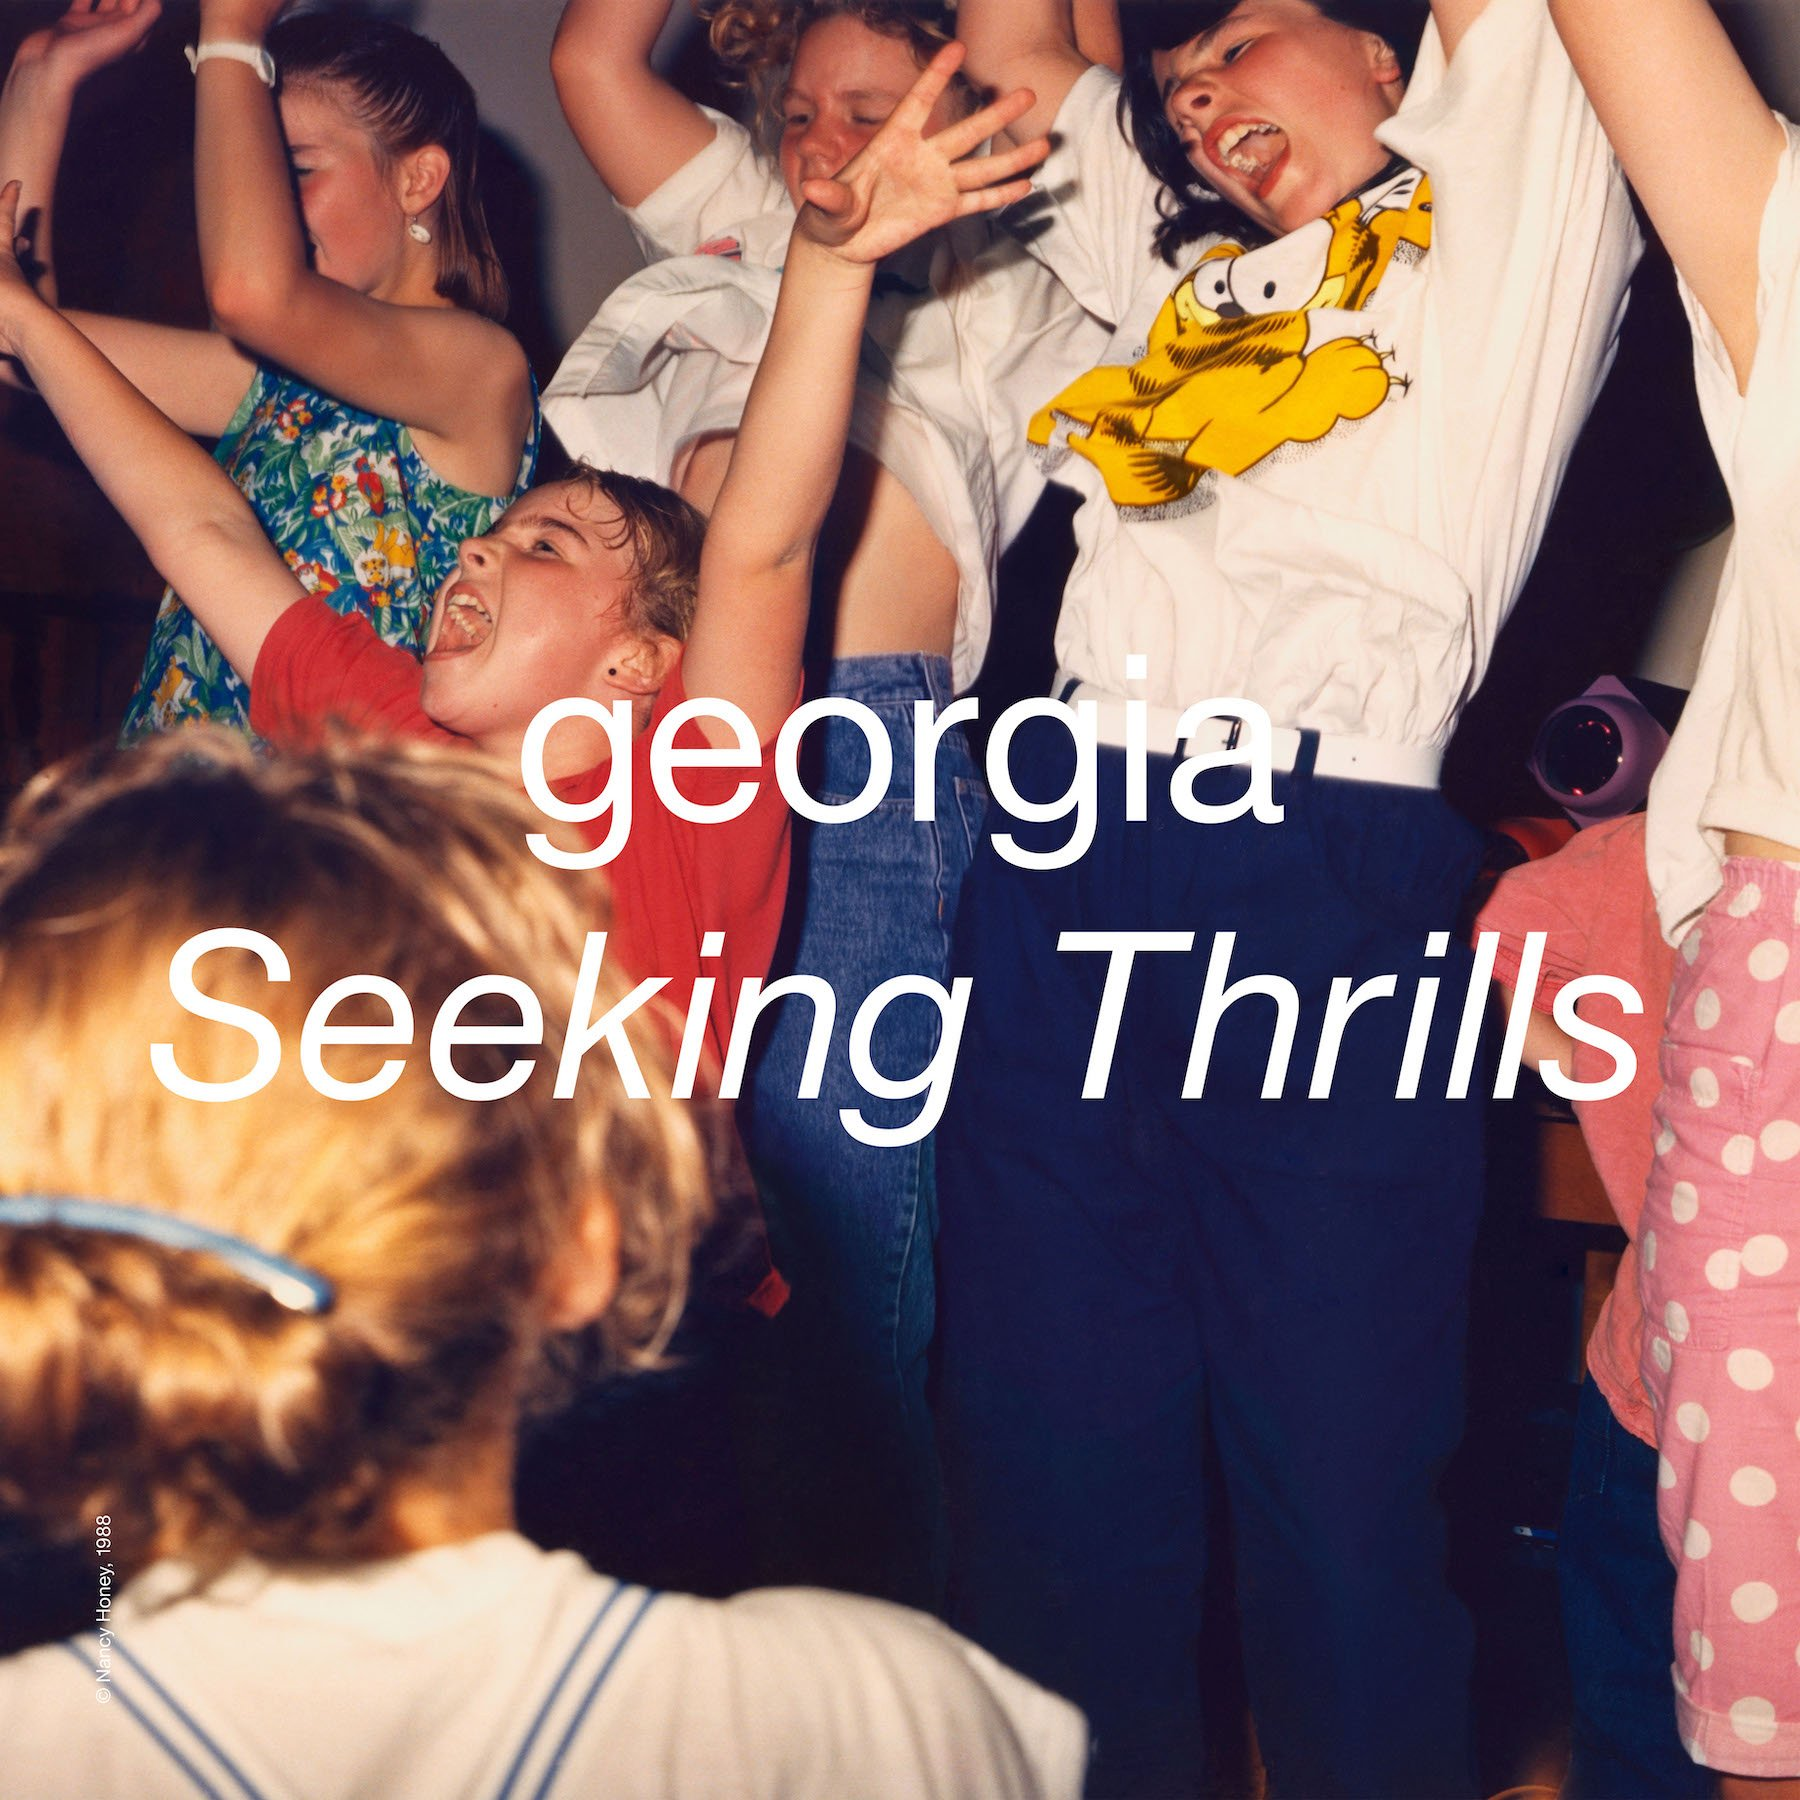 ALBUM REVIEW: Georgia - Seeking Thrills